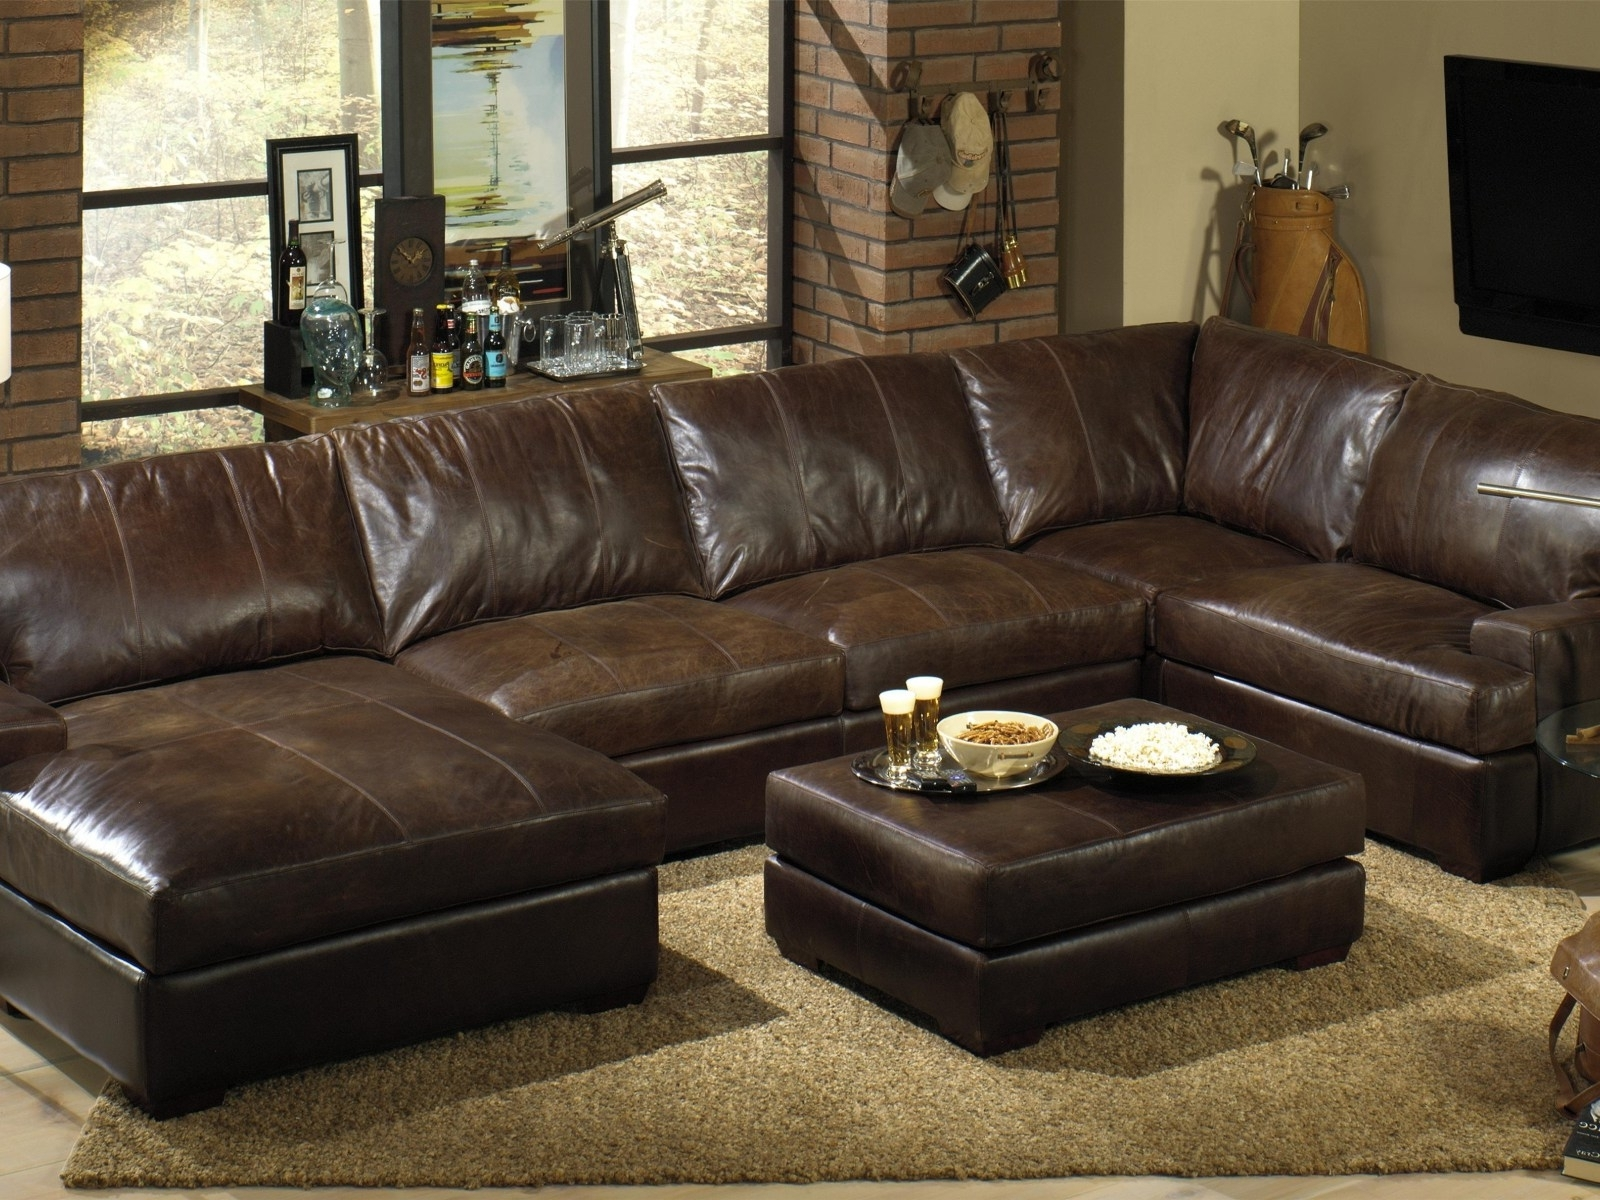 Leather Couches With Chaise Lounge With Well Known ▻ Sofa : 39 Sectional Sofa With Chaise Lounge Leather Sectional (View 12 of 15)